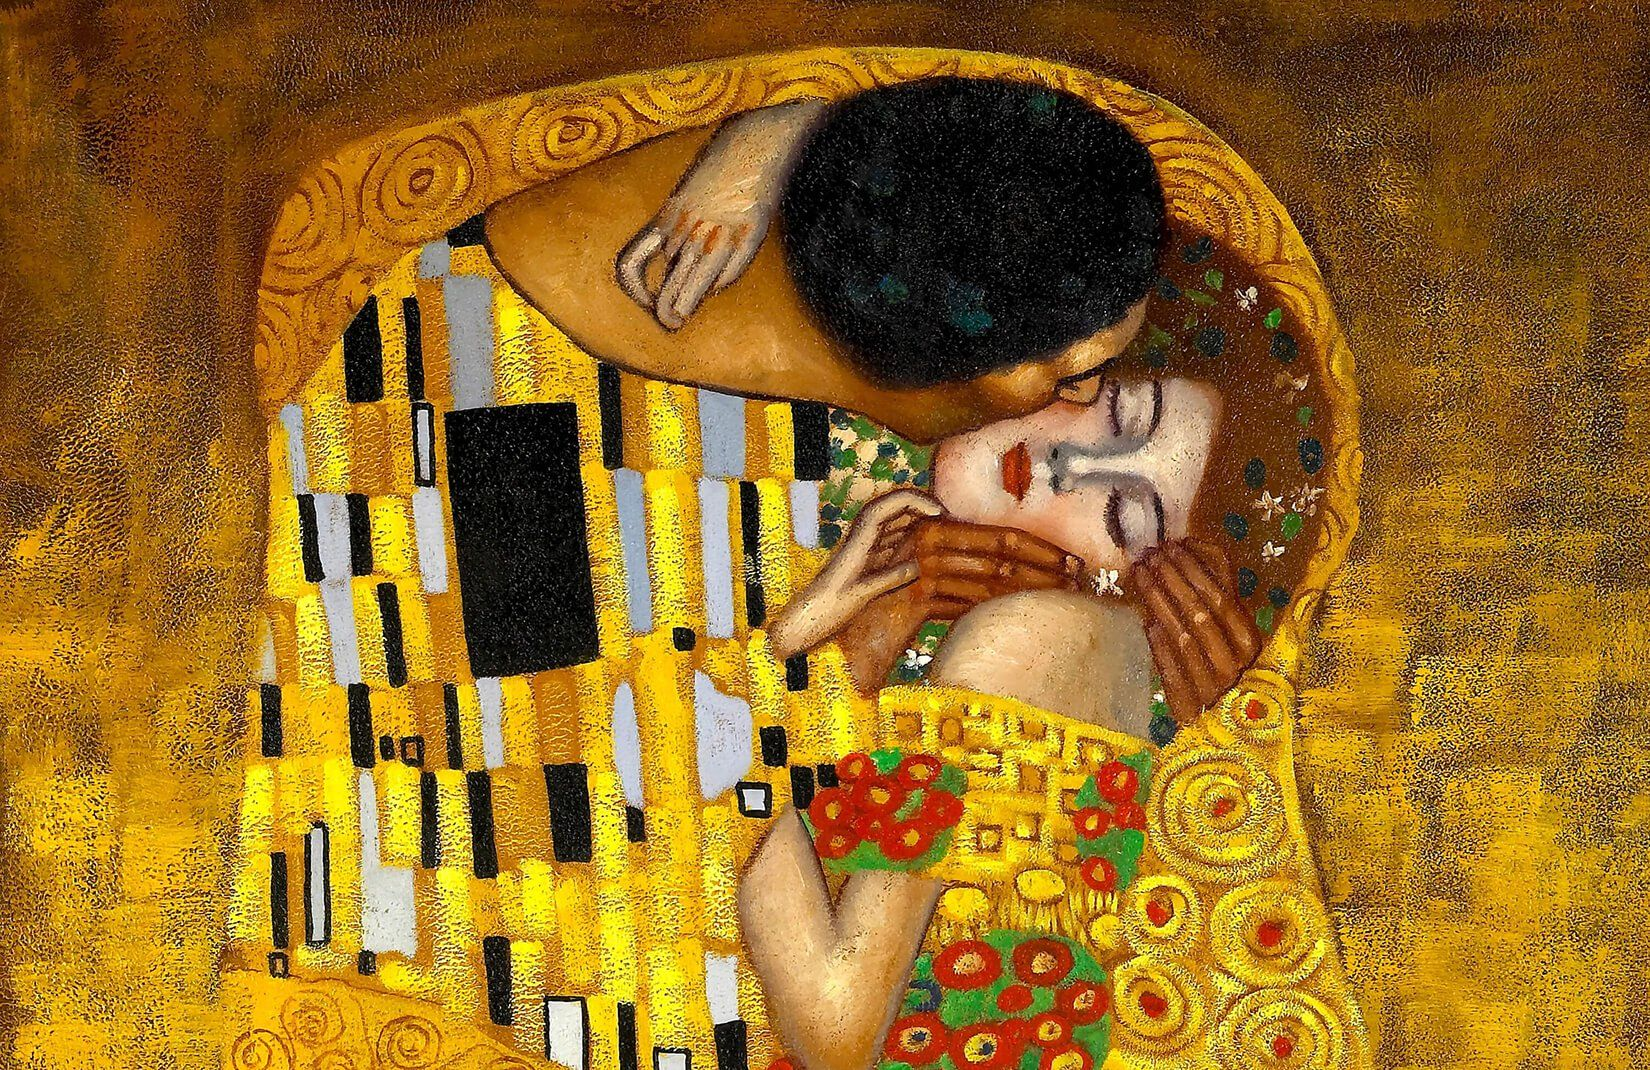 1650x1070 Painting By Gustav Klimt, (SF:8) - 749.5 Kbyte, archive